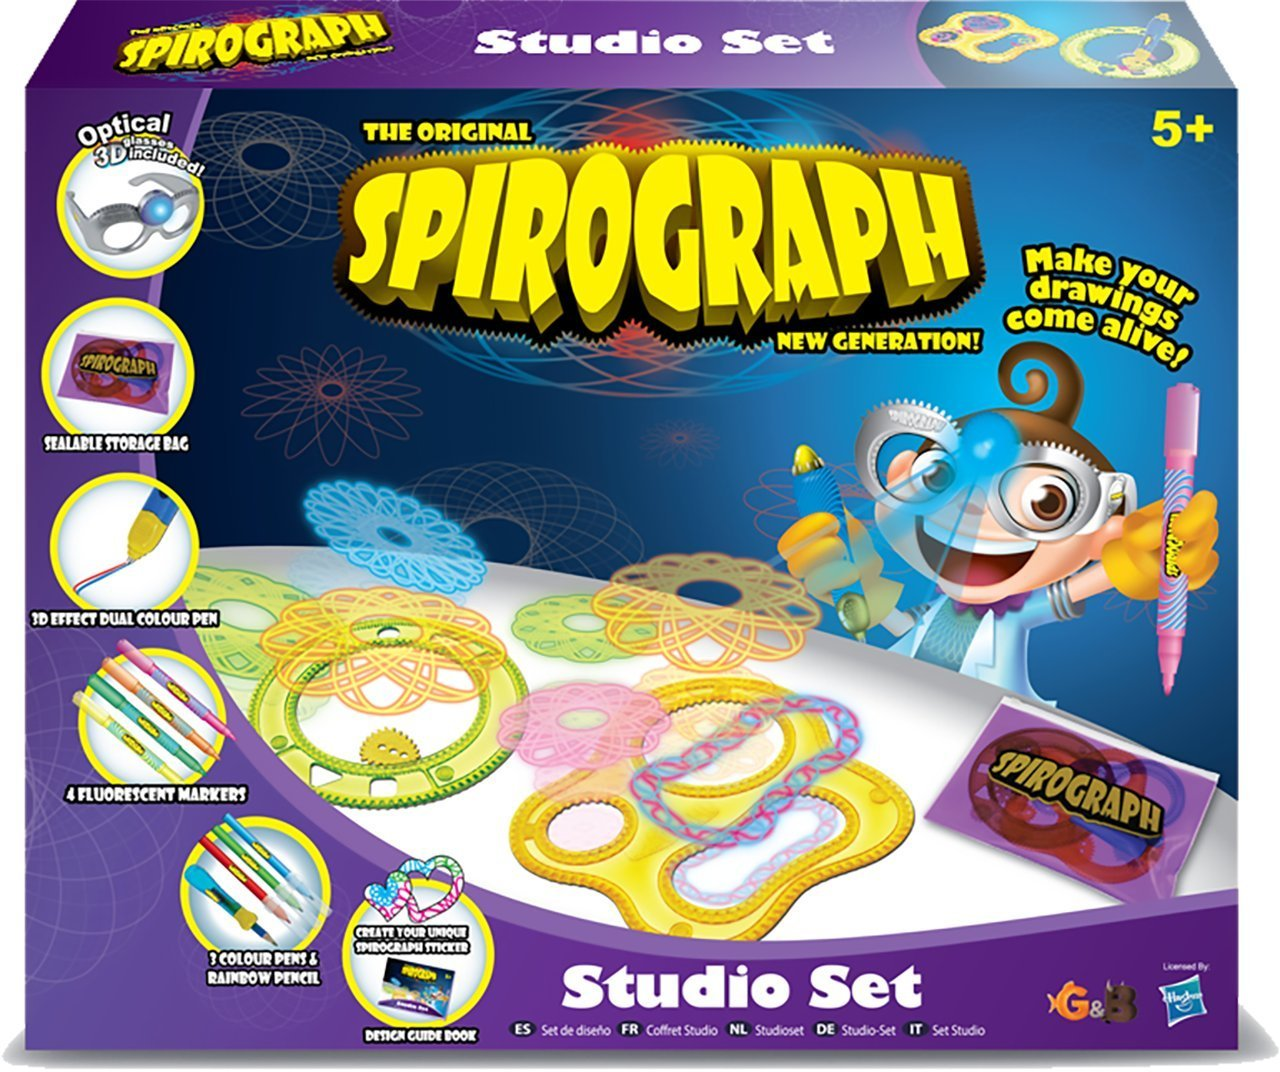 Win 1 of Spirograph Optical 3D Studio Sets